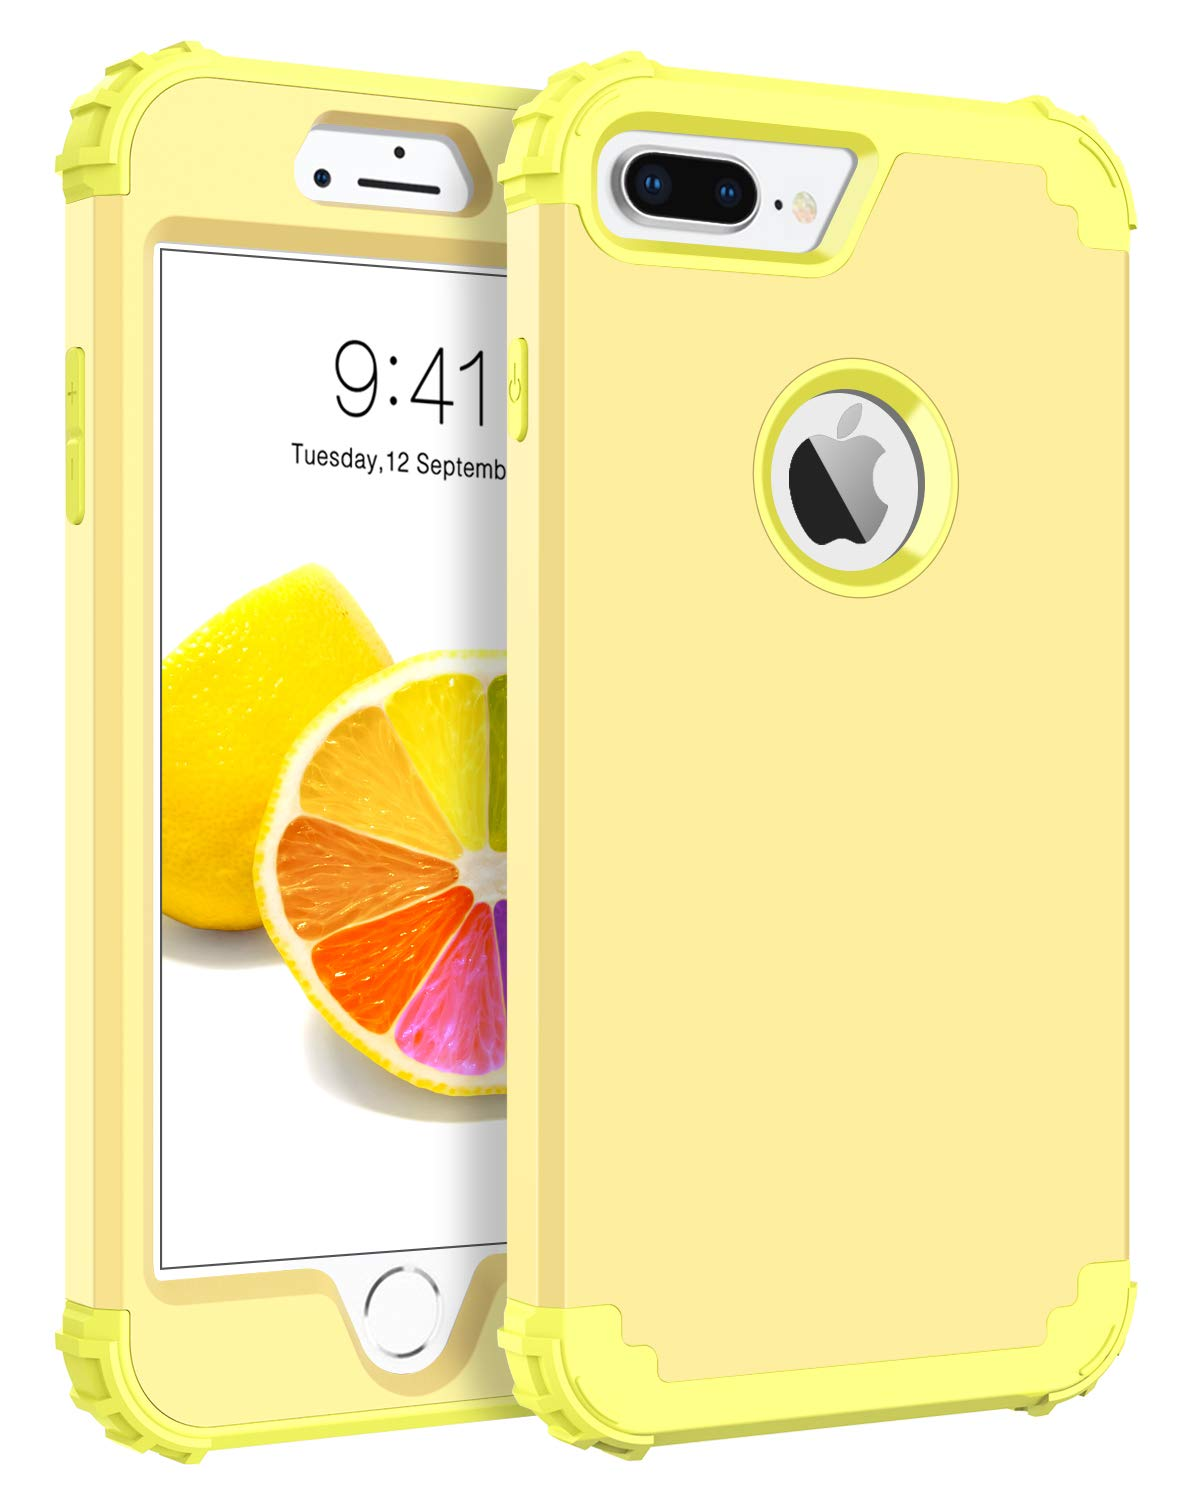 BENTOBEN Case for iPhone 8 Plus/iPhone 7 Plus, 3 in 1 Hybrid Hard PC Soft Rubber Heavy Duty Rugged Bumper Shockproof Anti Slip Full-Body Protective ...